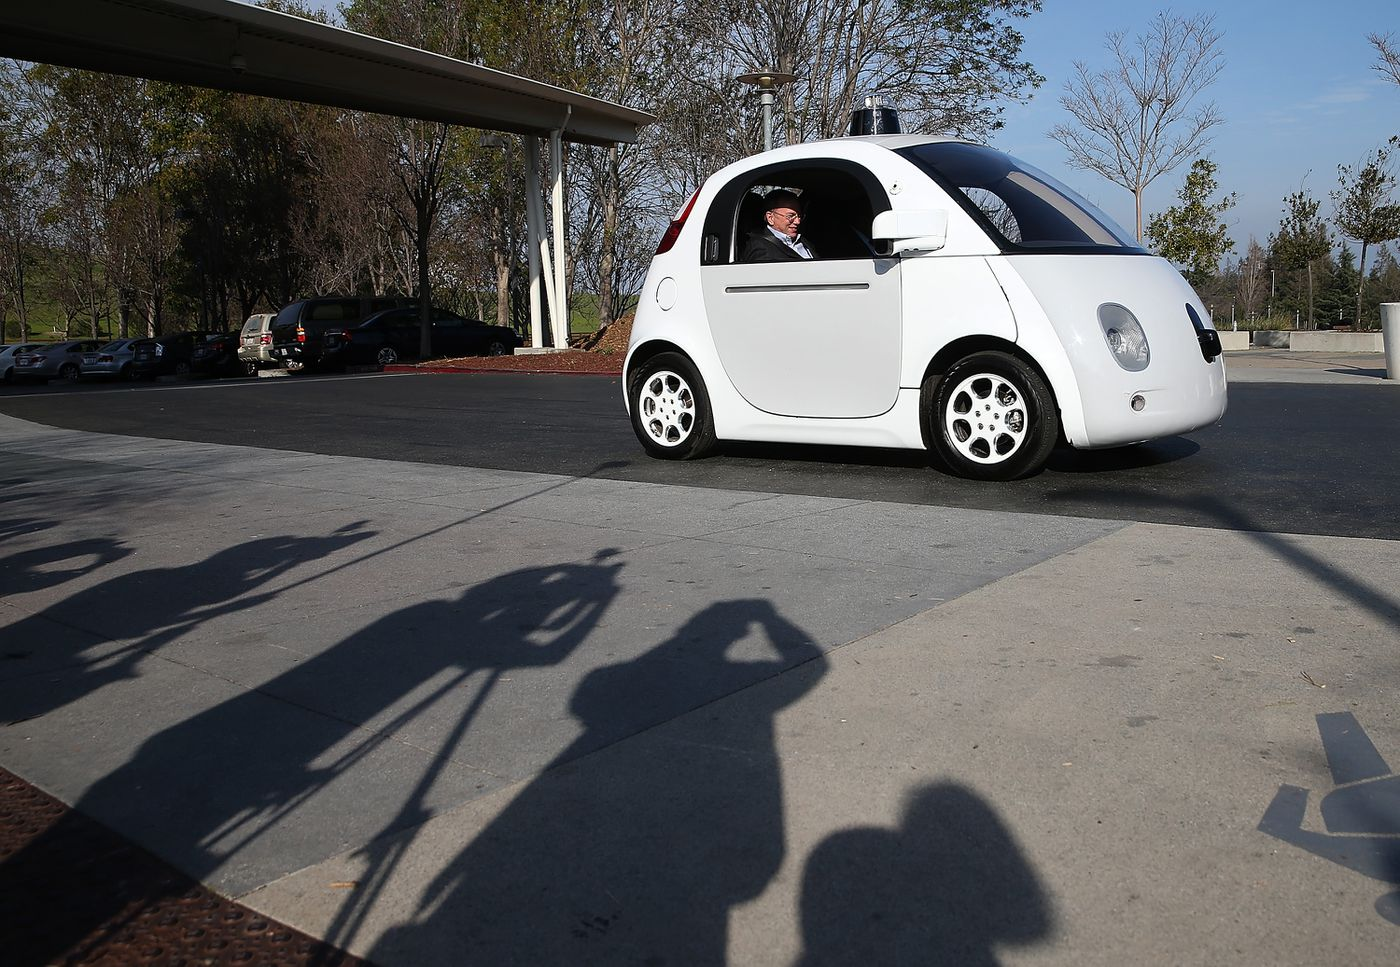 Car companies' vision of a gradual transition to self-driving cars